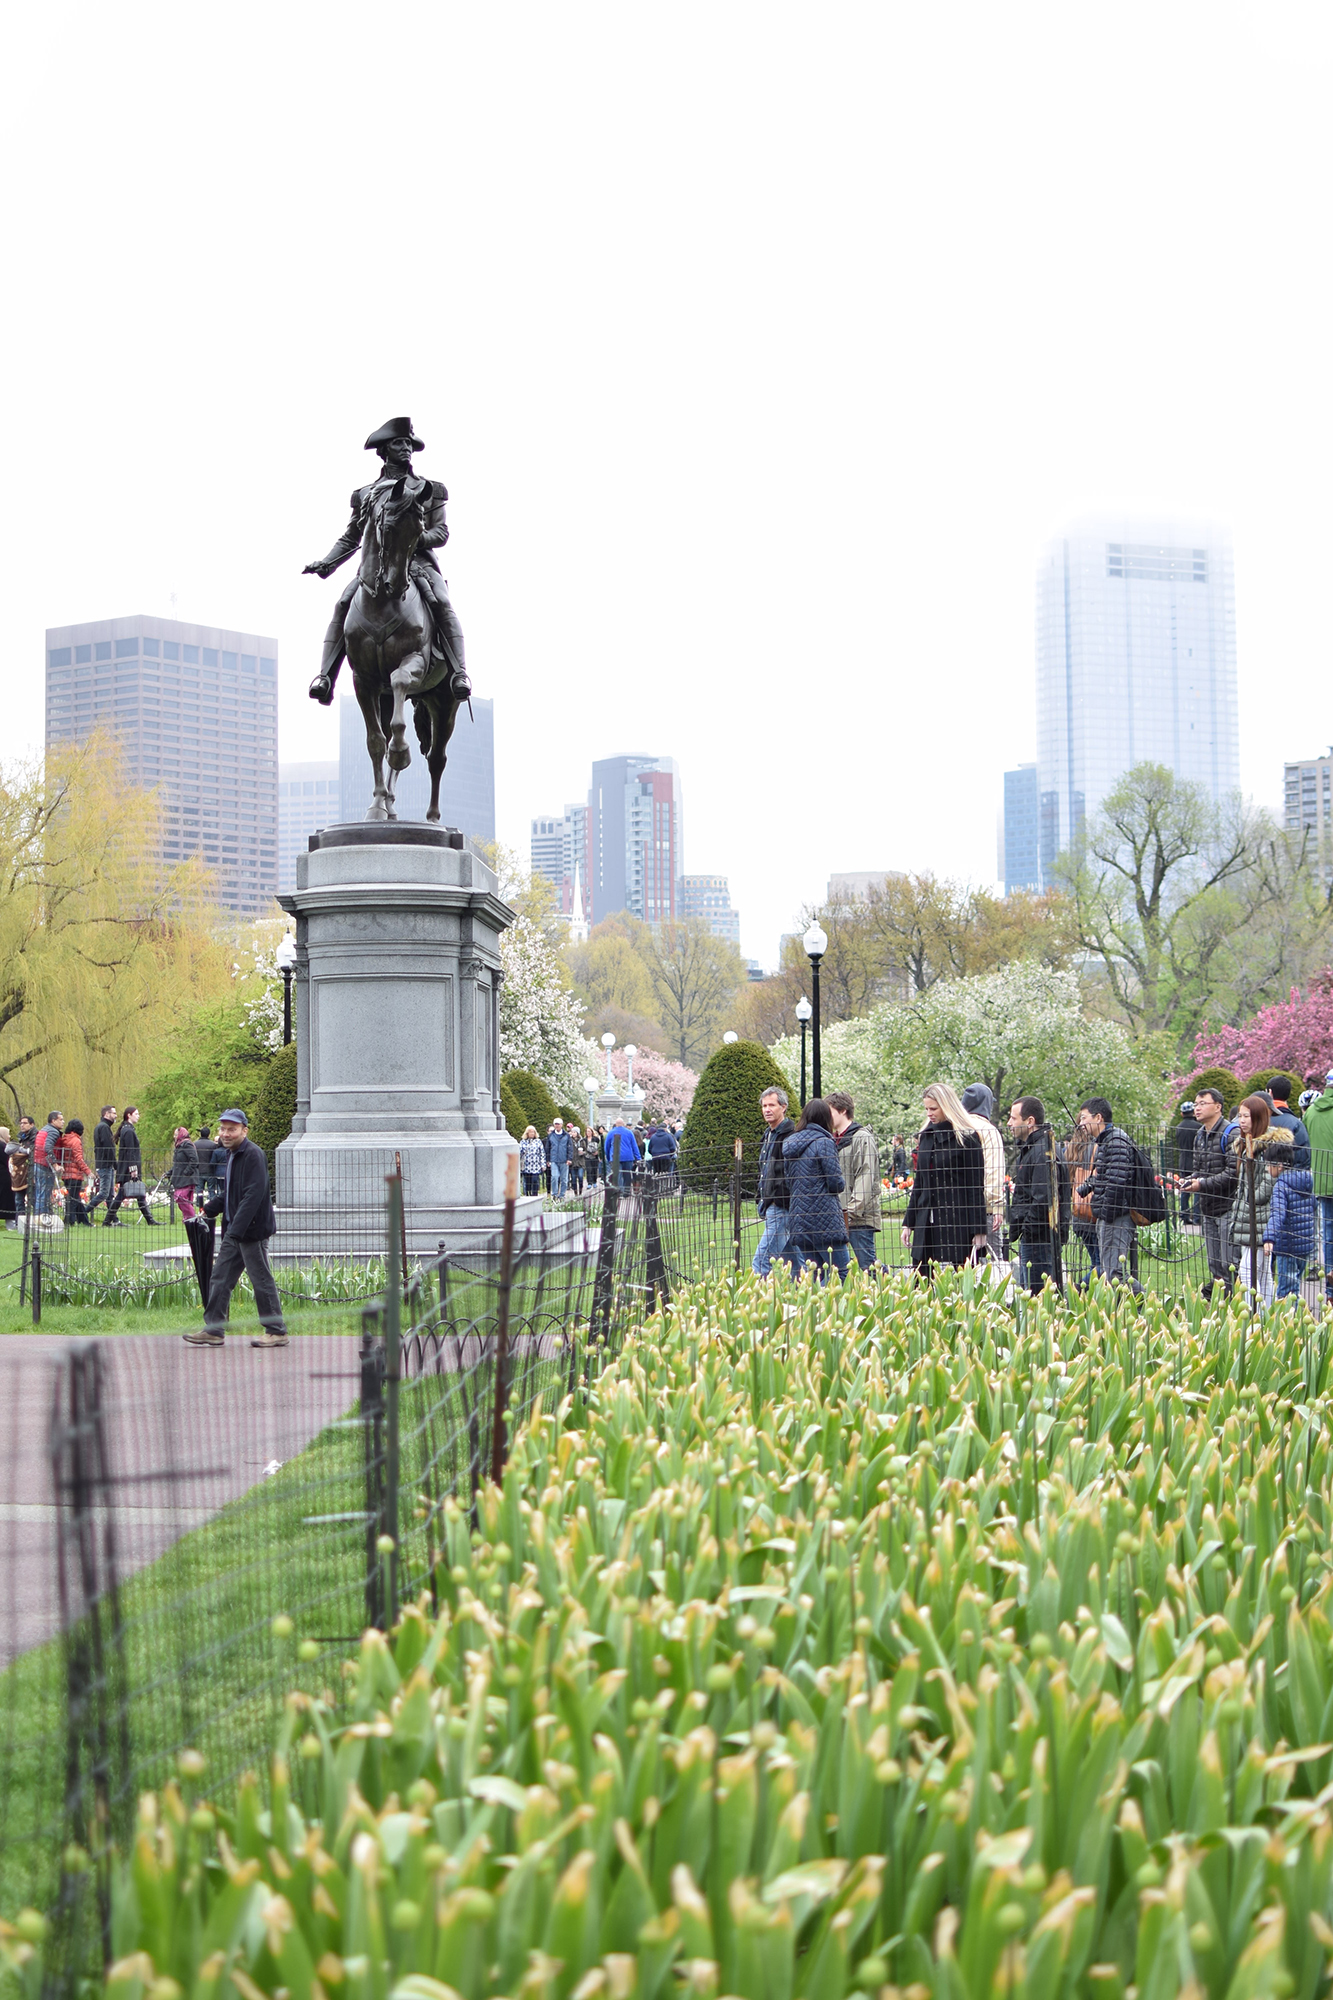 Boston Commons - 8 Fun Things to Do in Boston - FilterGrade